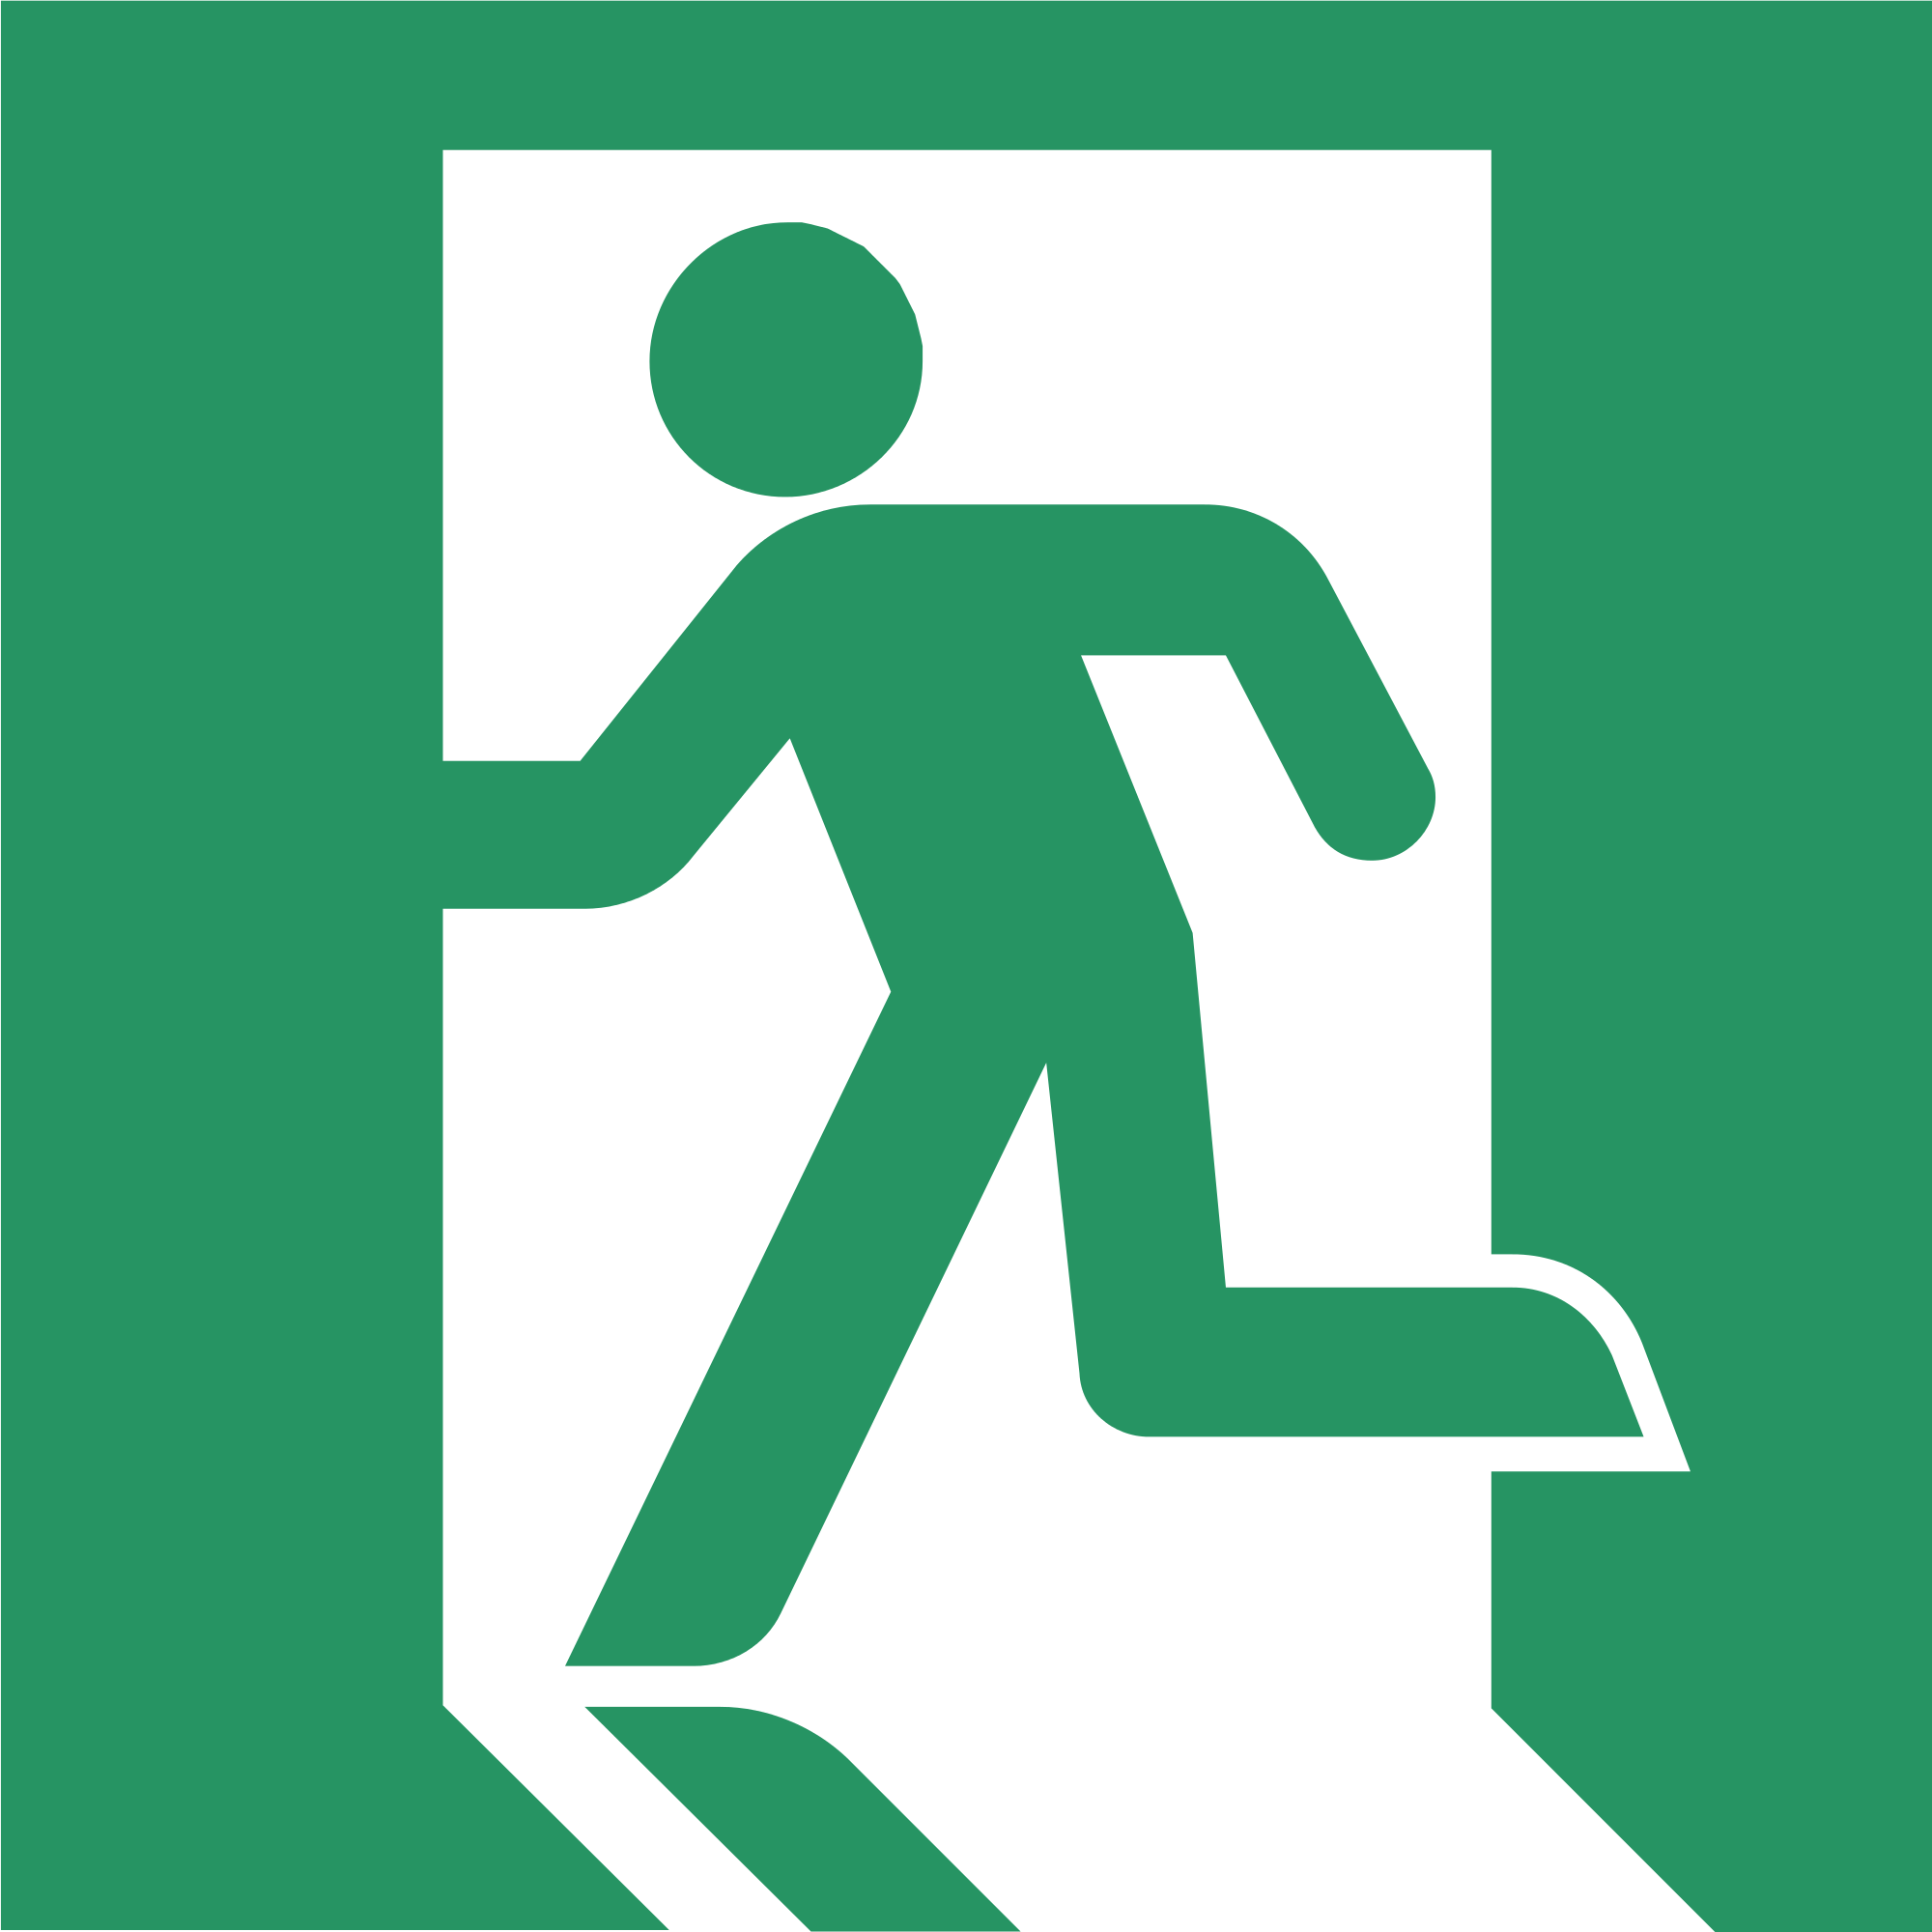 Exit Symbol Green PNG Image